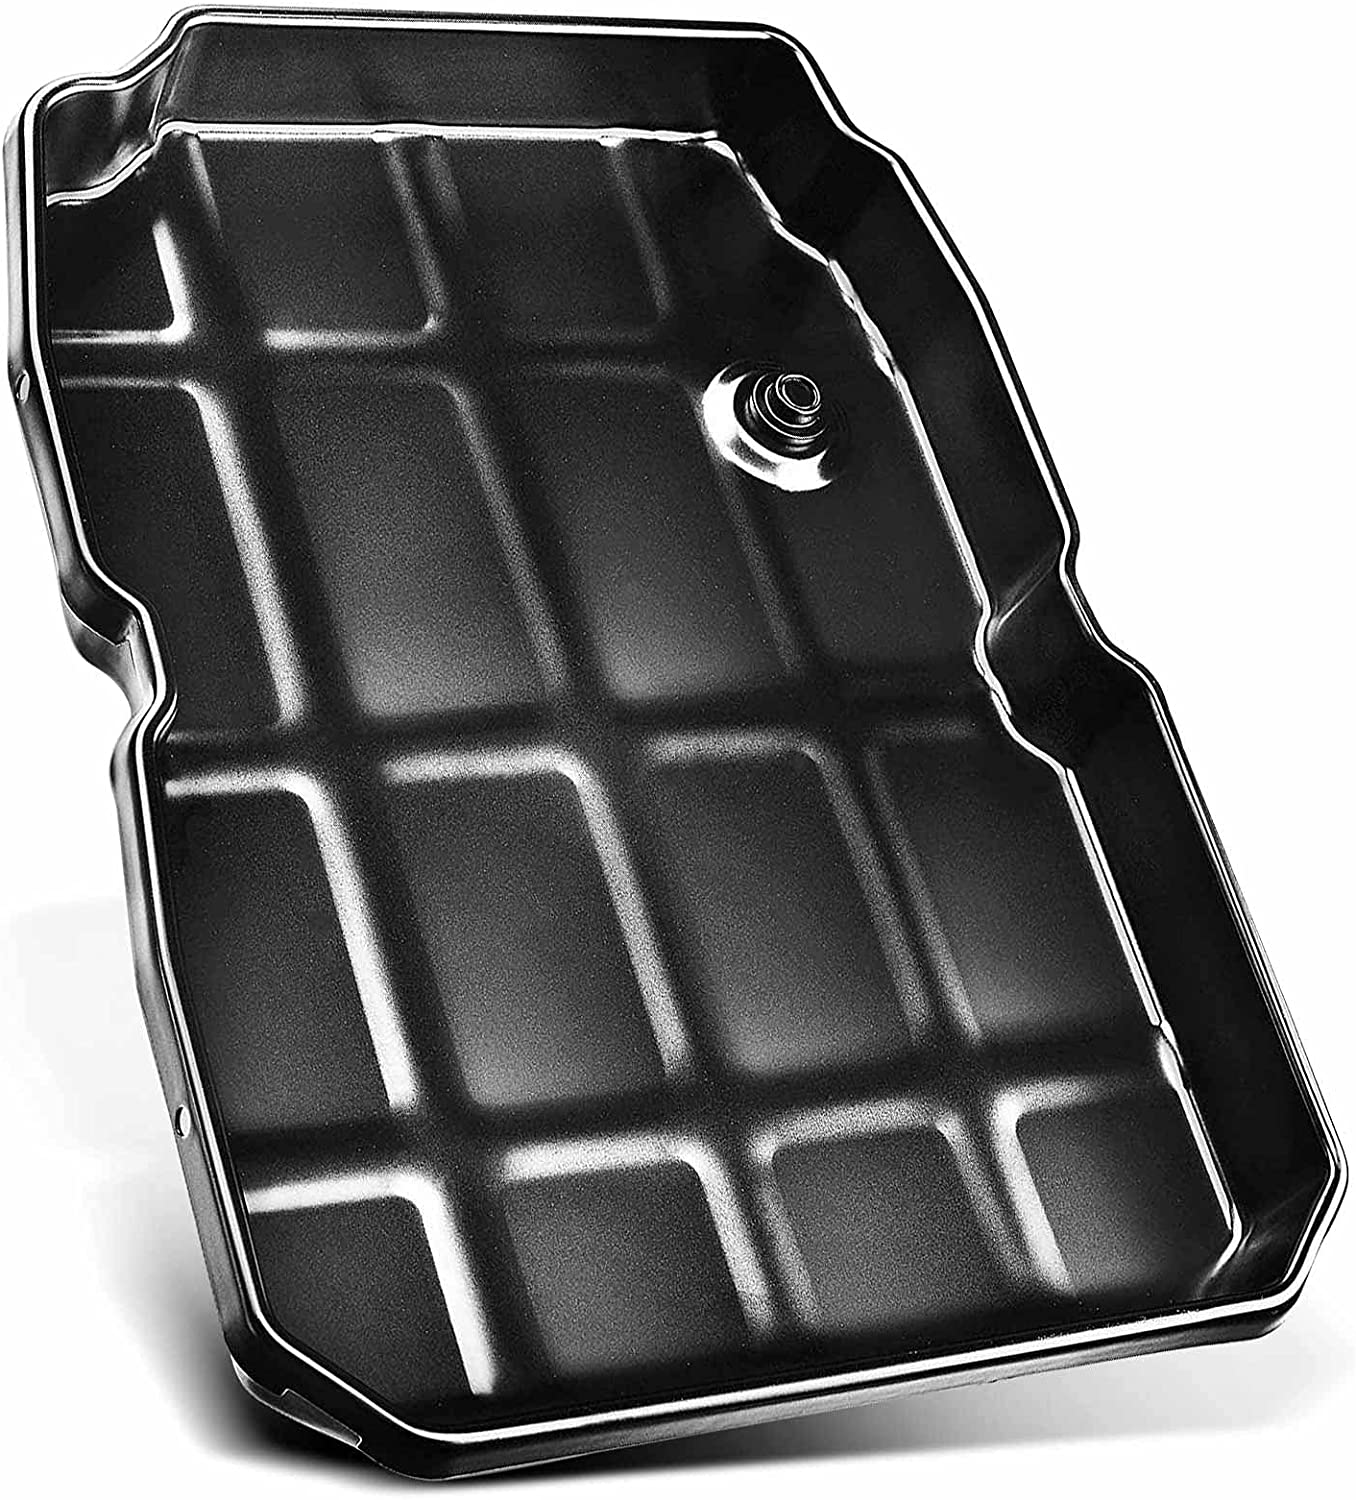 Transmission Oil Pan and Indianapolis Mall Drain Chrysler for Replacement 300 Plug Limited time trial price